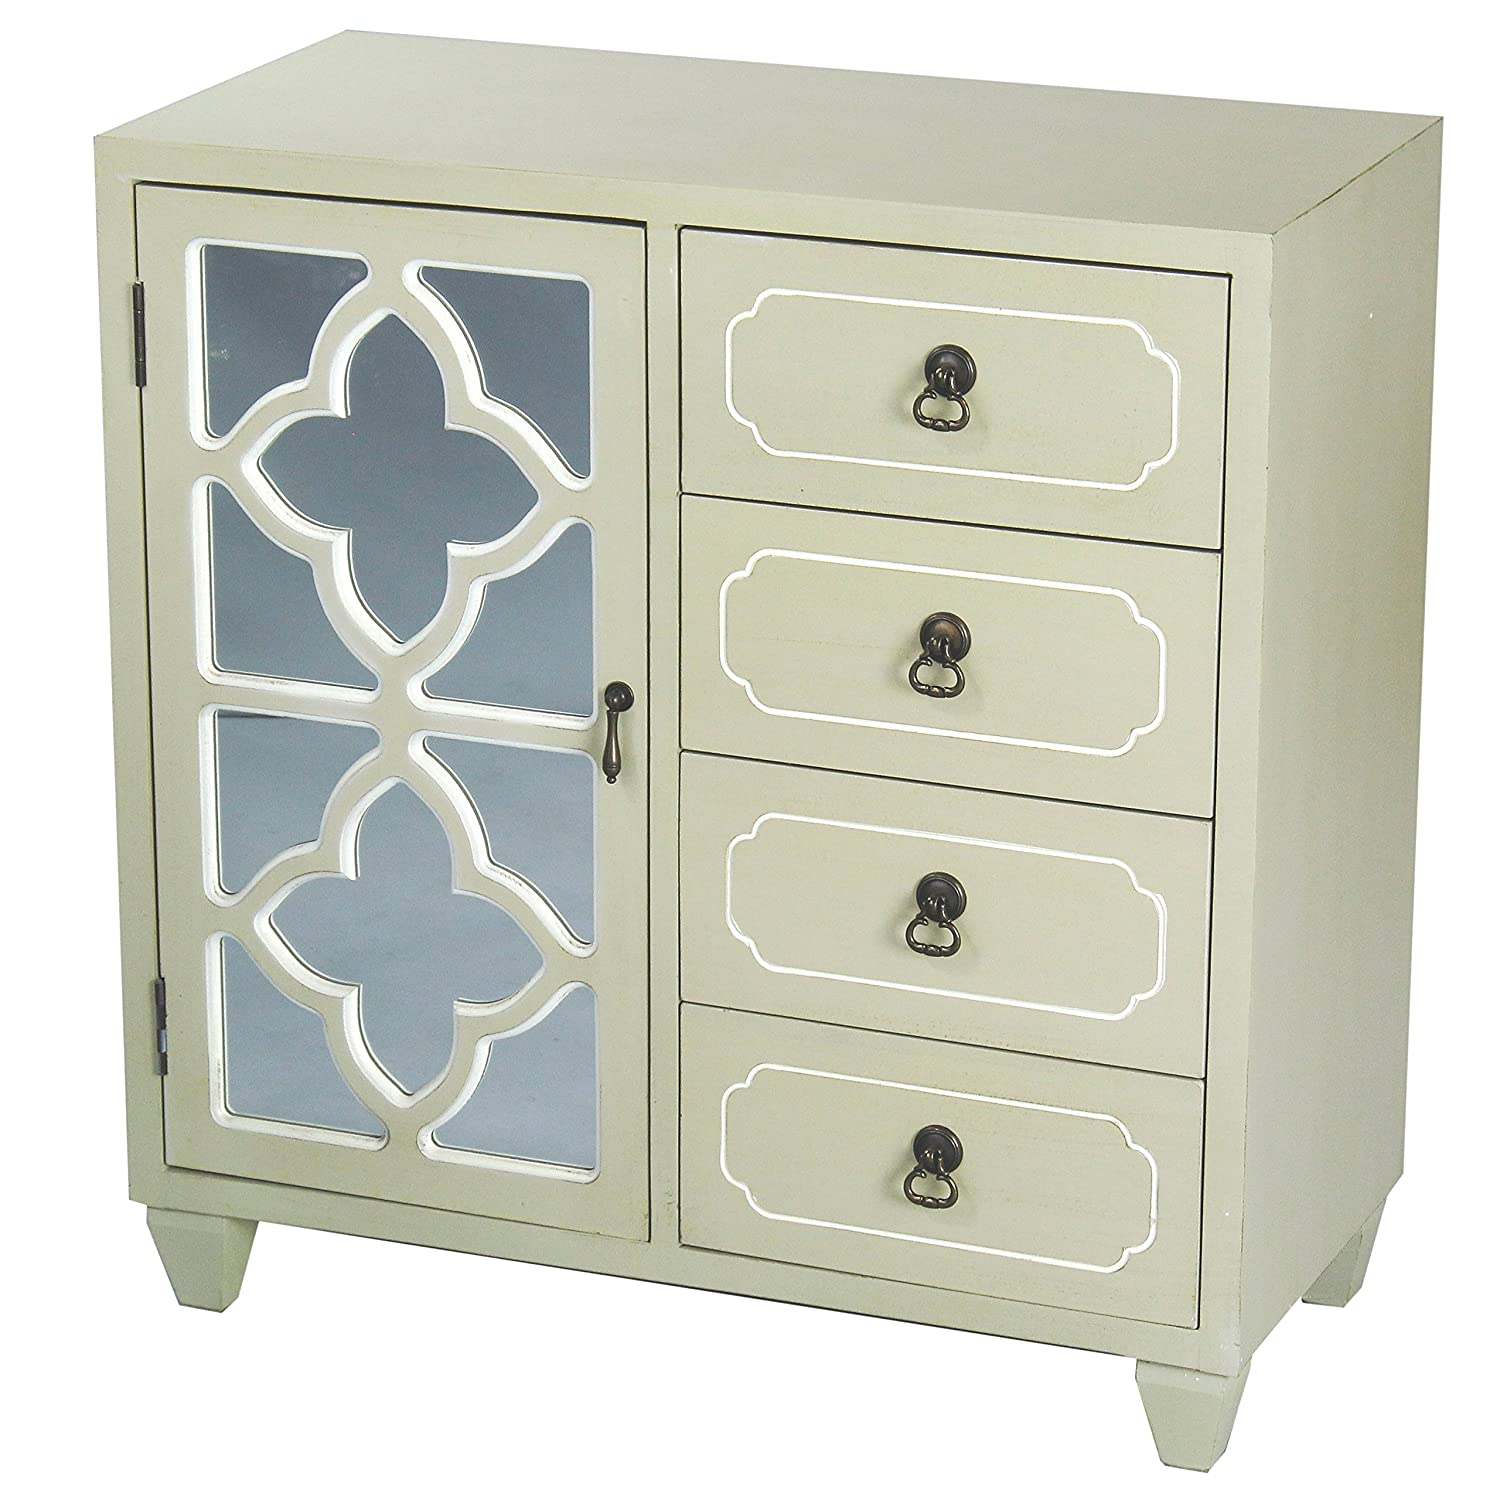 Heather Ann Creations 4 Drawer Wooden Accent Chest and Cabinet, Clover Pattern Grille with Mirrored Backing, 30.75